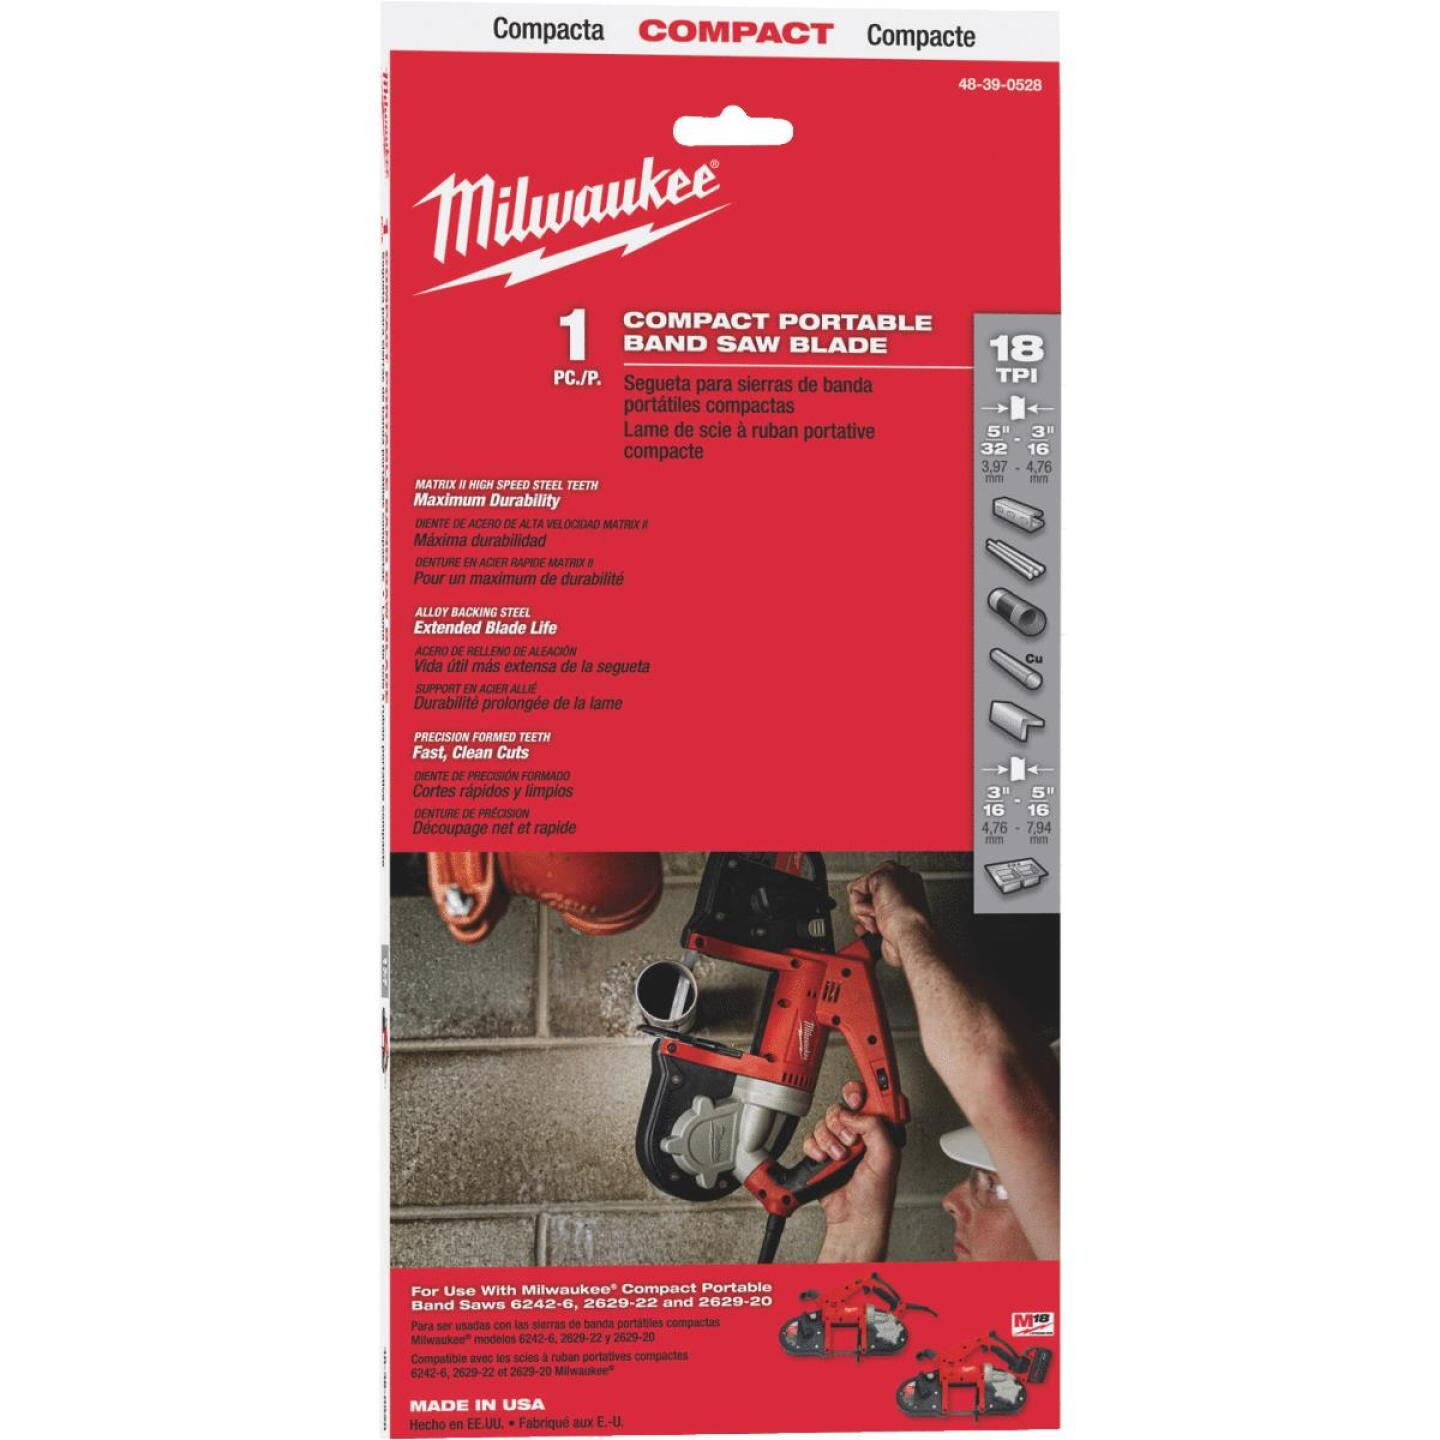 Milwaukee 35-3/8 In. x 1/2 In. 18 TPI Compact Band Saw Blade Image 1